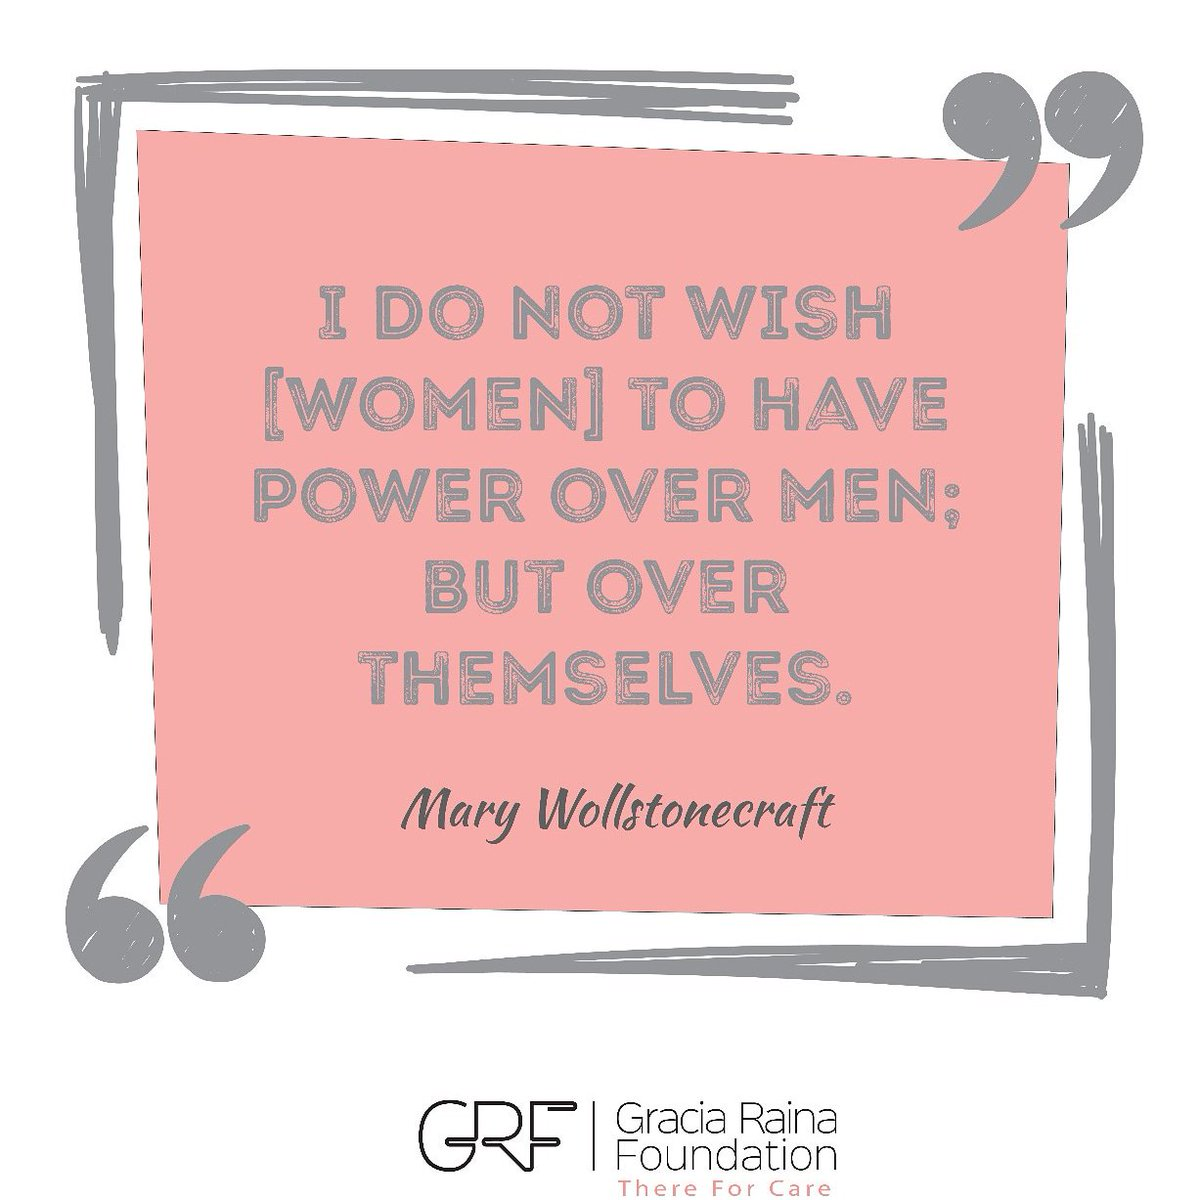 Women in power over themselves and decision-making can make a difference that benefits whole societies. #WomenPower #selfempowerment #grf #Thereforcare